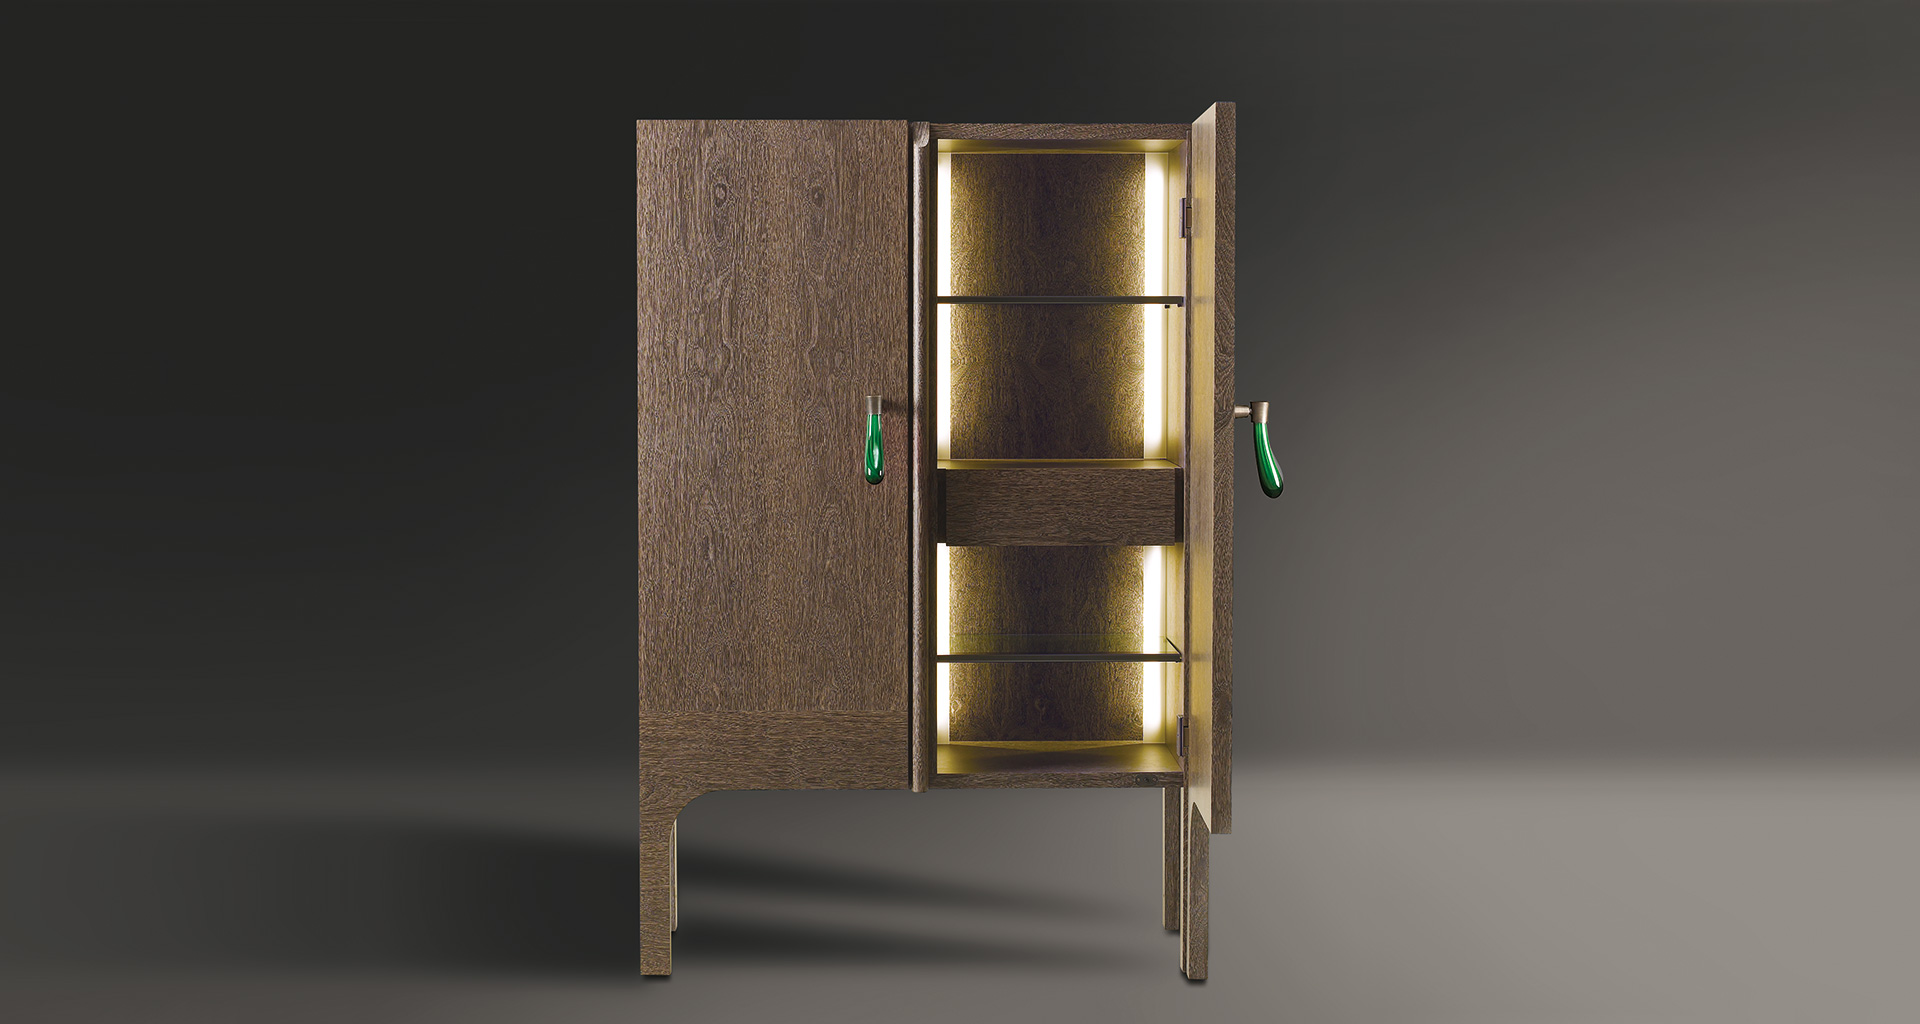 Inside of Tom Bombadil, a wooden cabinet with bronze profiles and a Murano glass handle, from Promemoria's catalogue | Promemoria